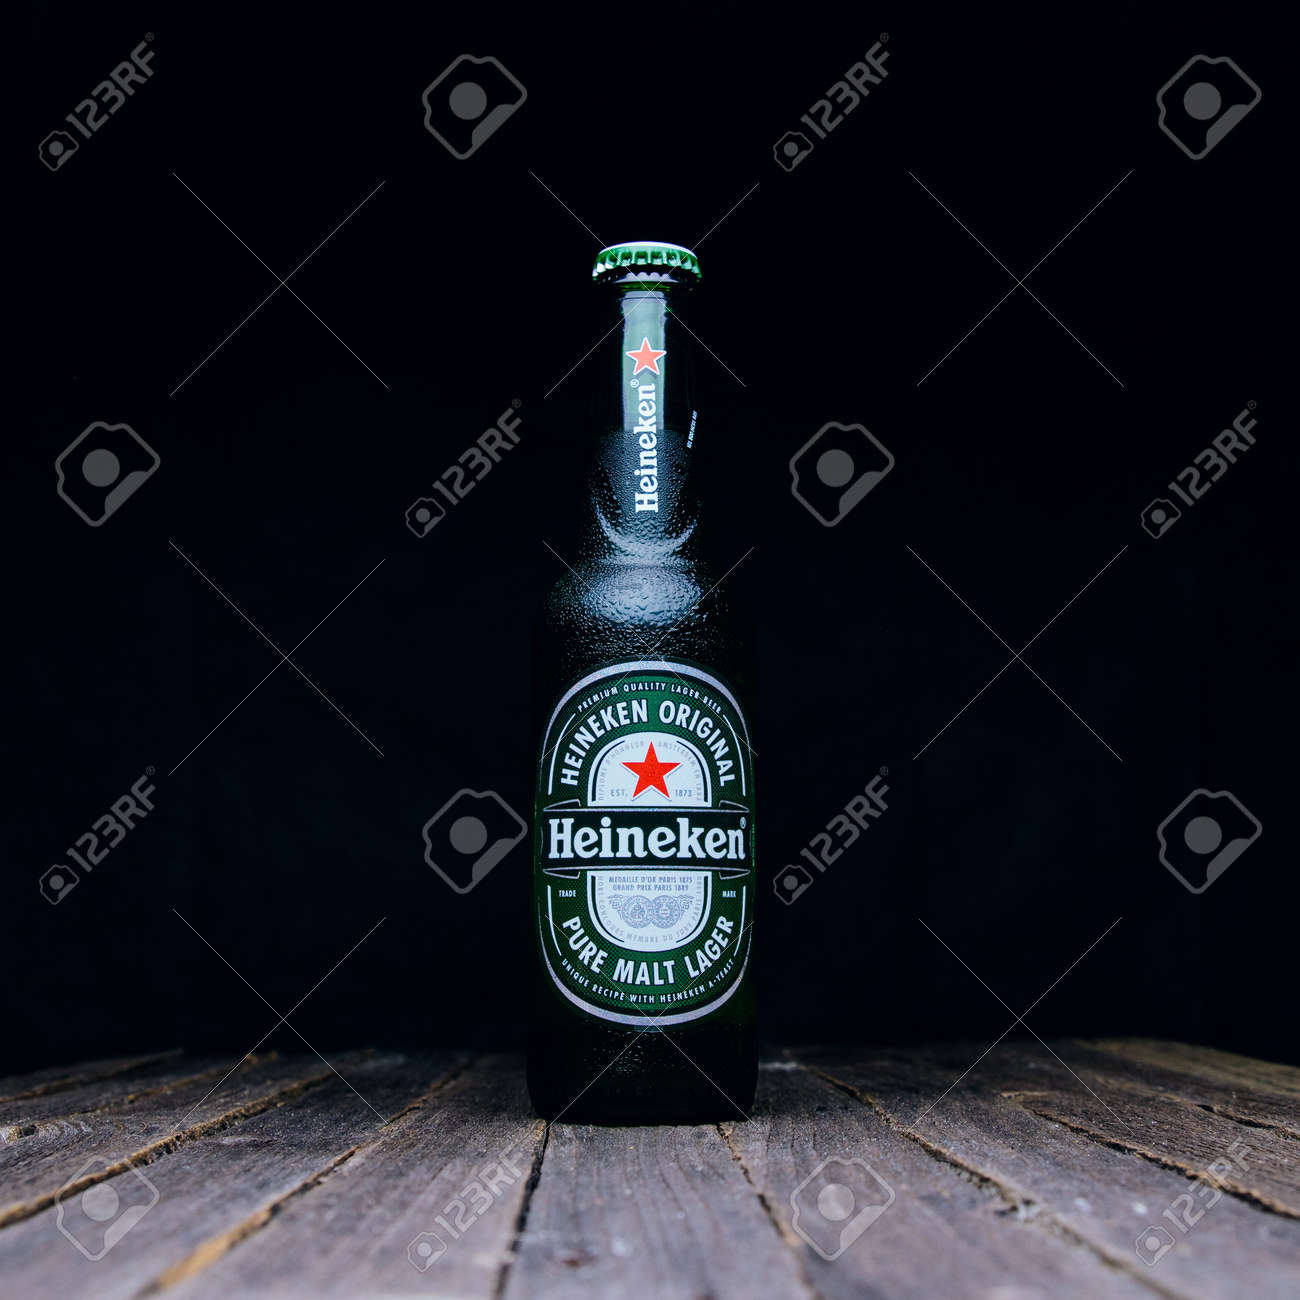 """Russia, Moscow, July 11, 2020: Bottle of """"Heineken"""" beer on a wooden table and dark background - 151378183"""